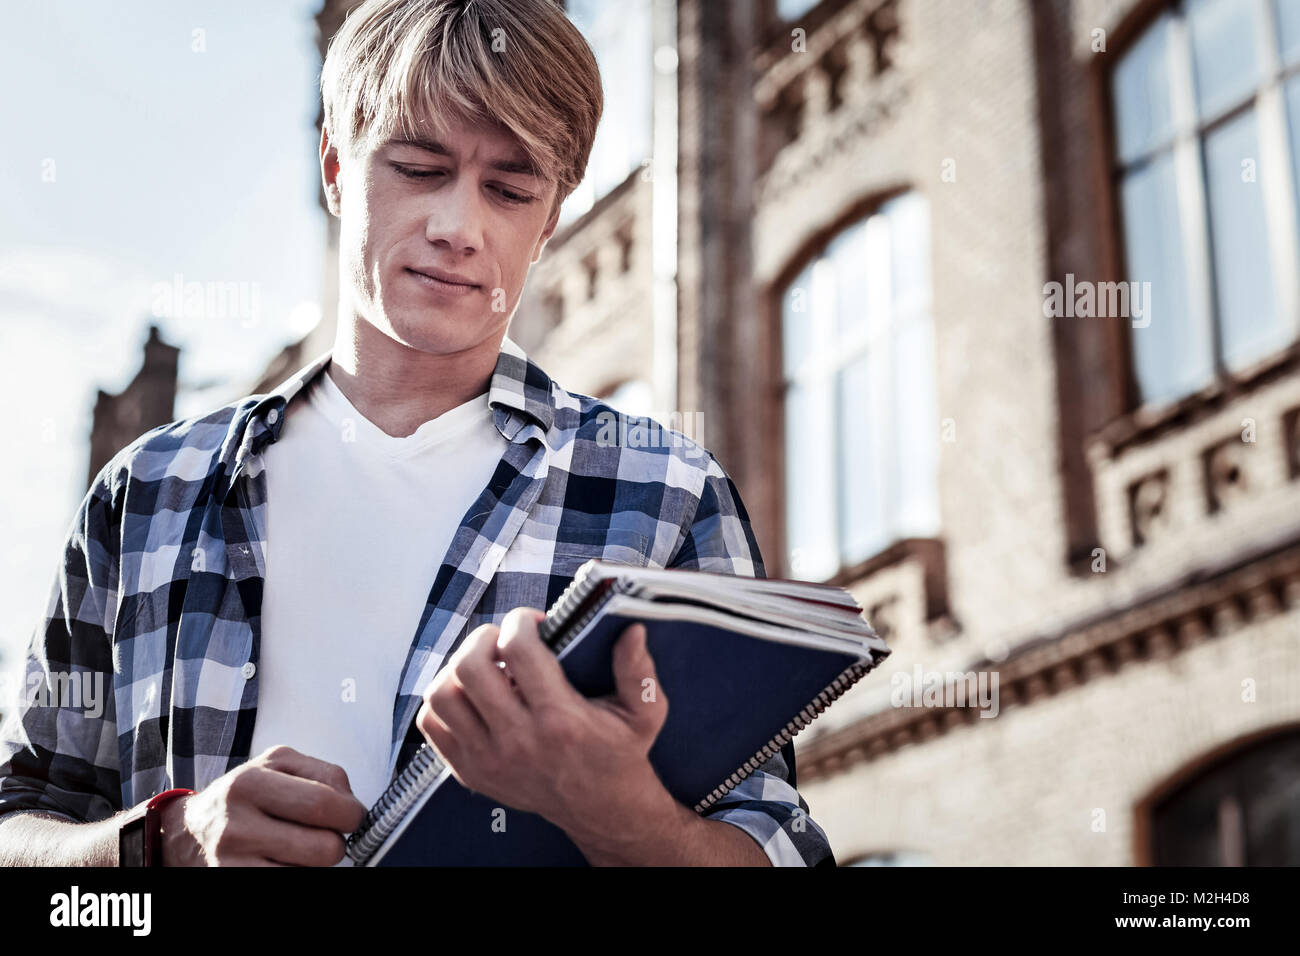 Nice serious man looking at his books - Stock Image